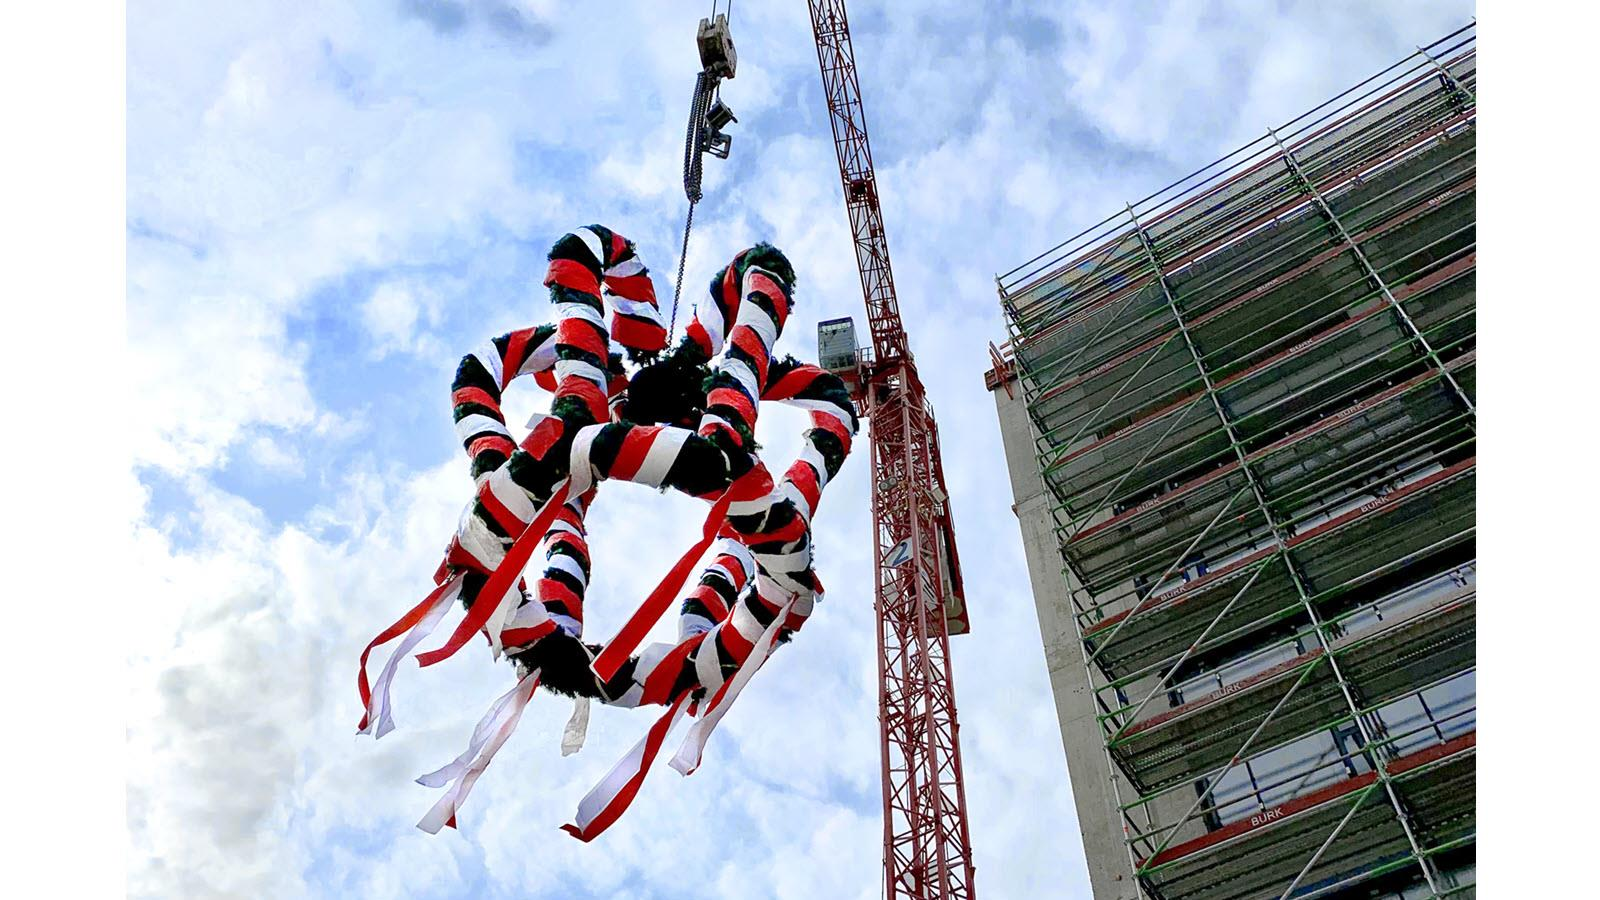 Lifting a wreath of multicolored ribbons to celebrate the topping out of a building in Marburg, Germany